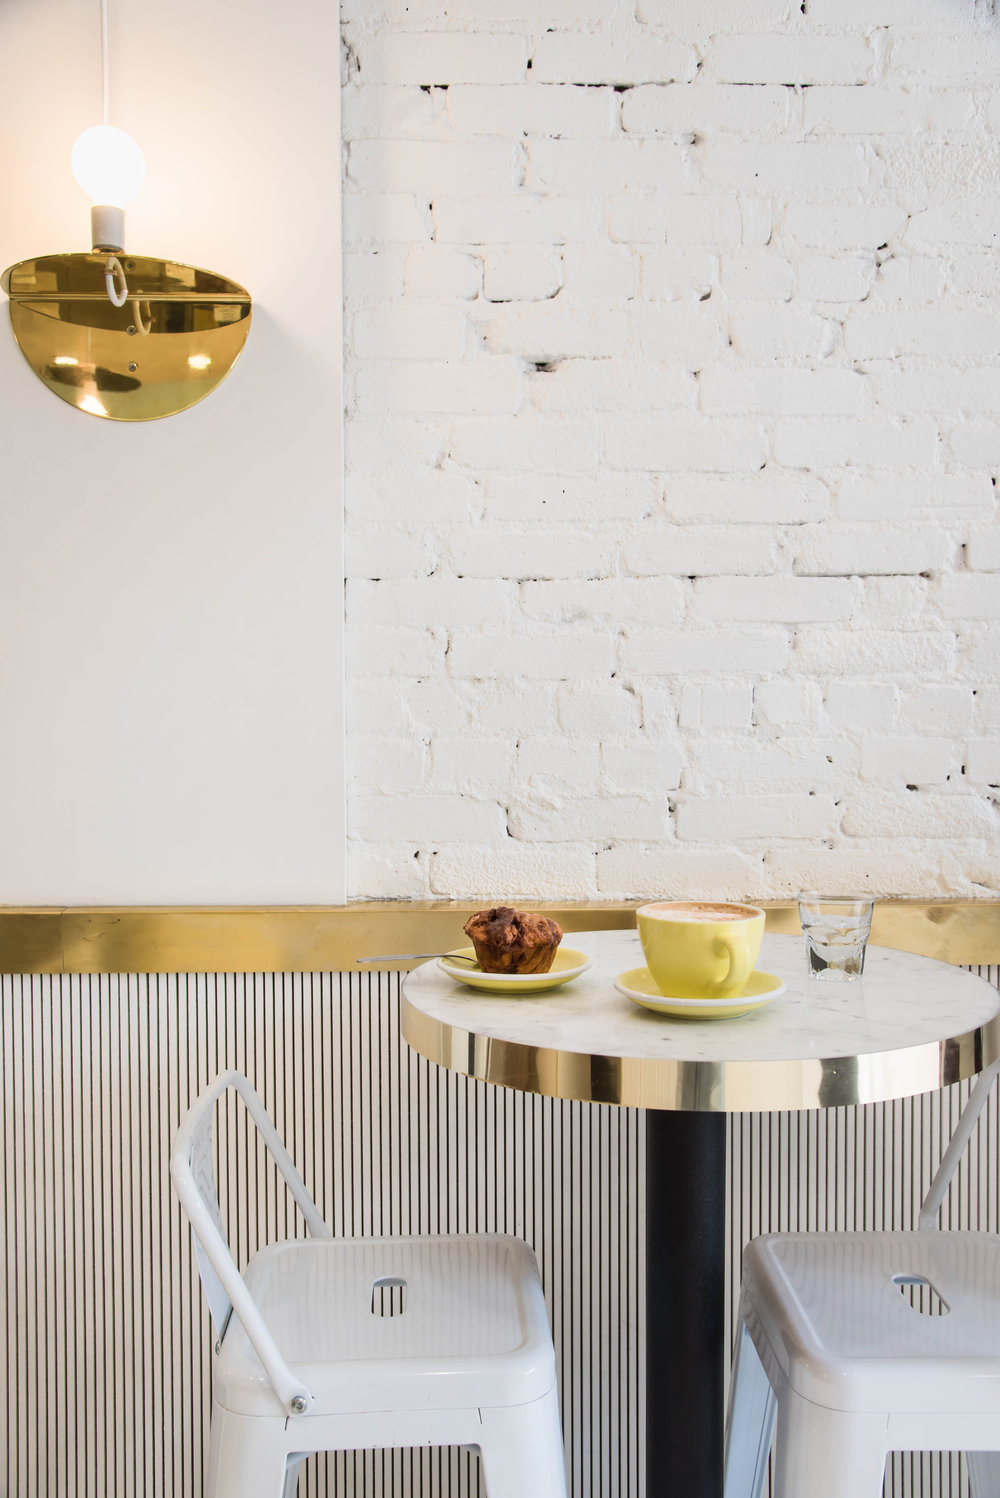 ROSE & IVY Journal A Taste of New York Ovenly Brooklyn